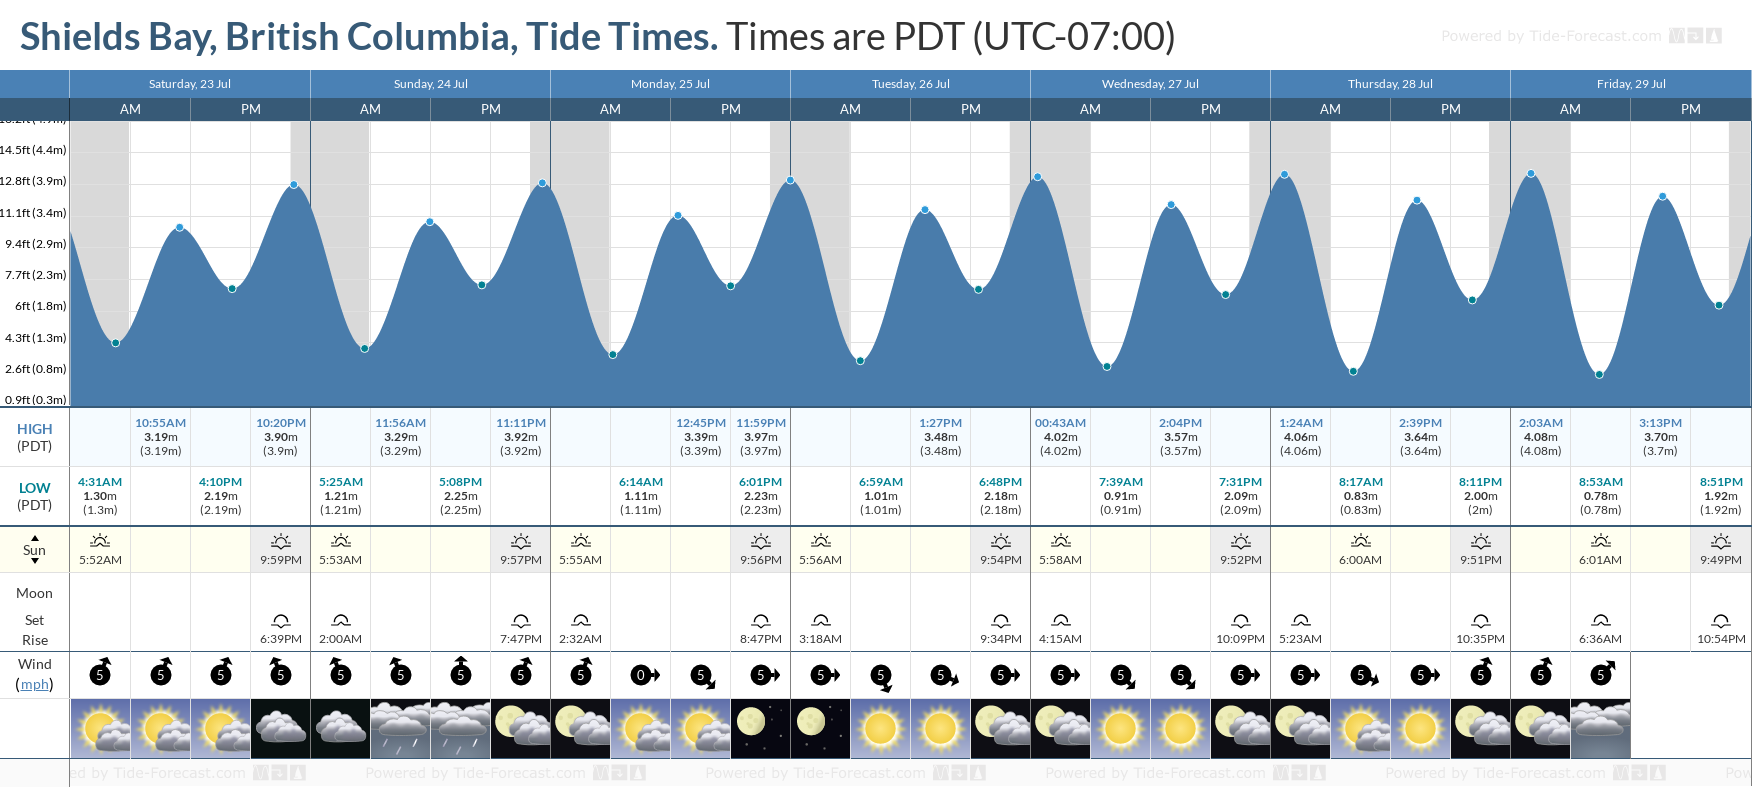 Shields Bay, British Columbia Tide Chart including high and low tide tide times for the next 7 days